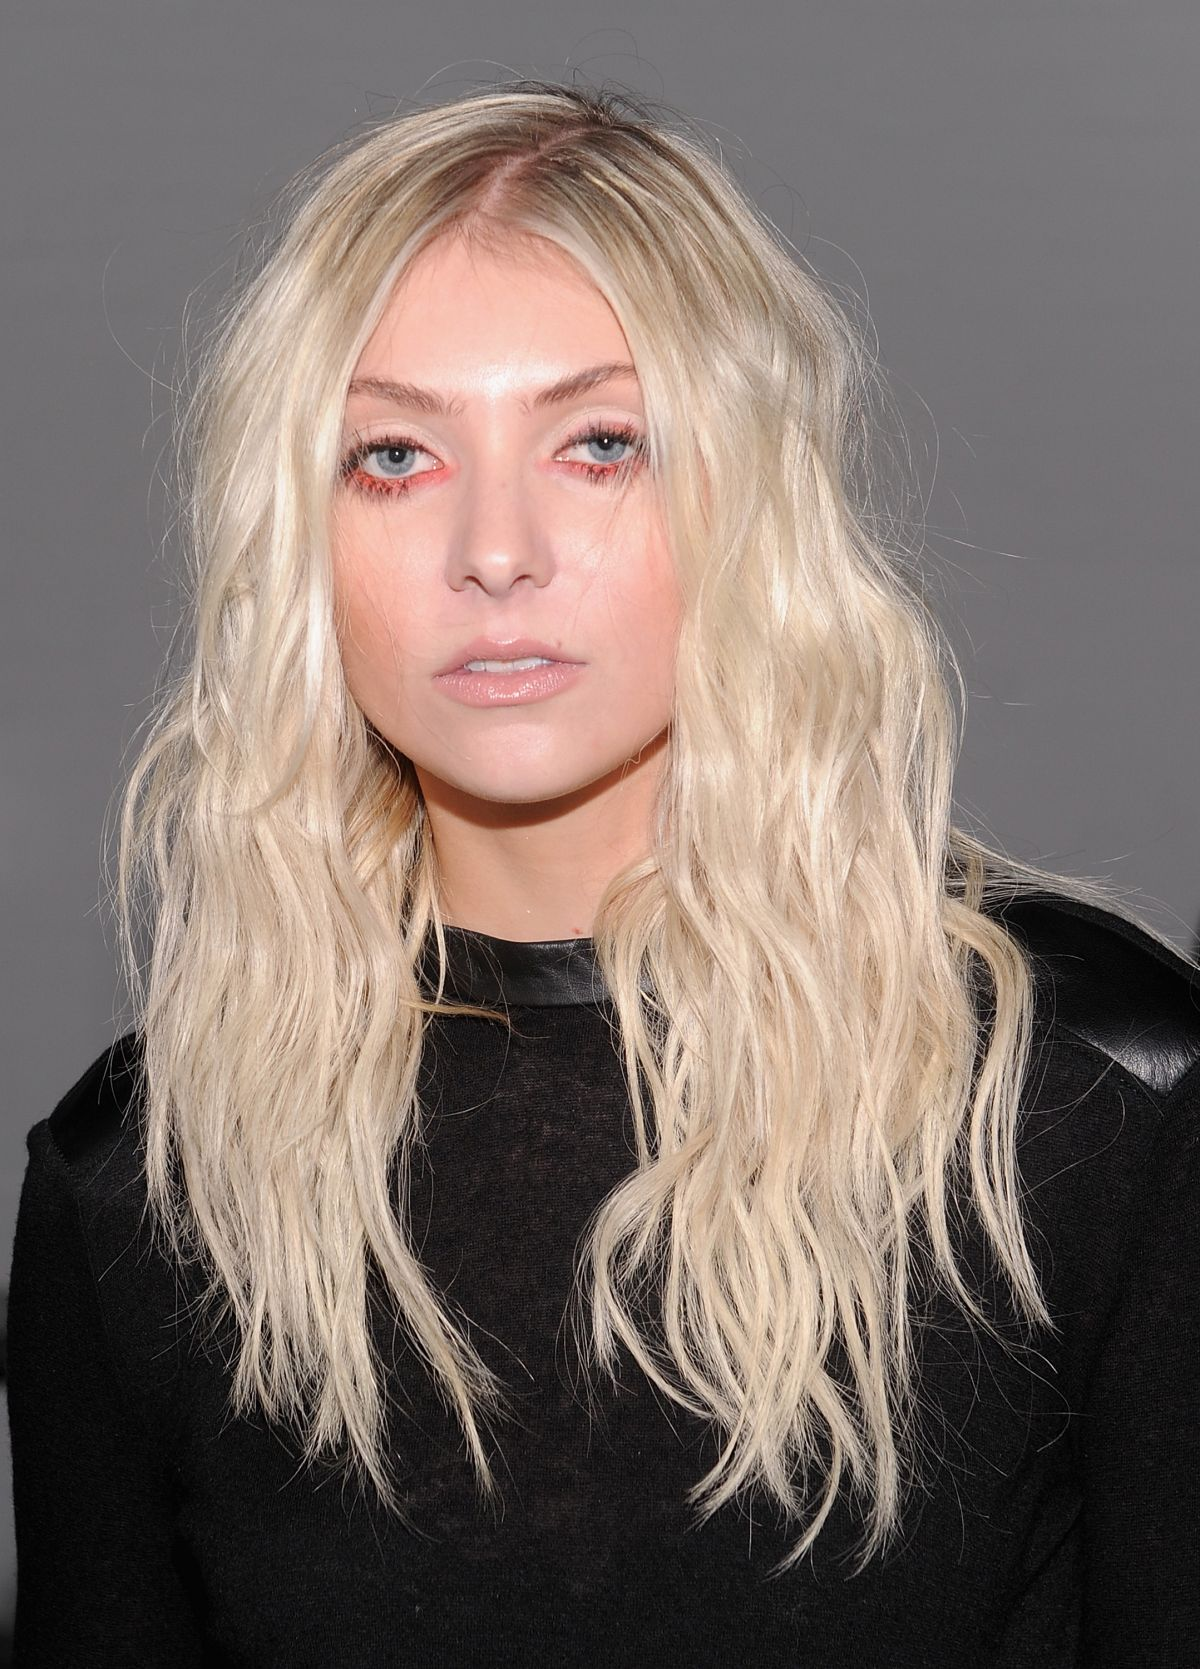 Taylor Momsen At Helmut Lang Spring 2014 Fashion Show In NYC - Celebzz ...